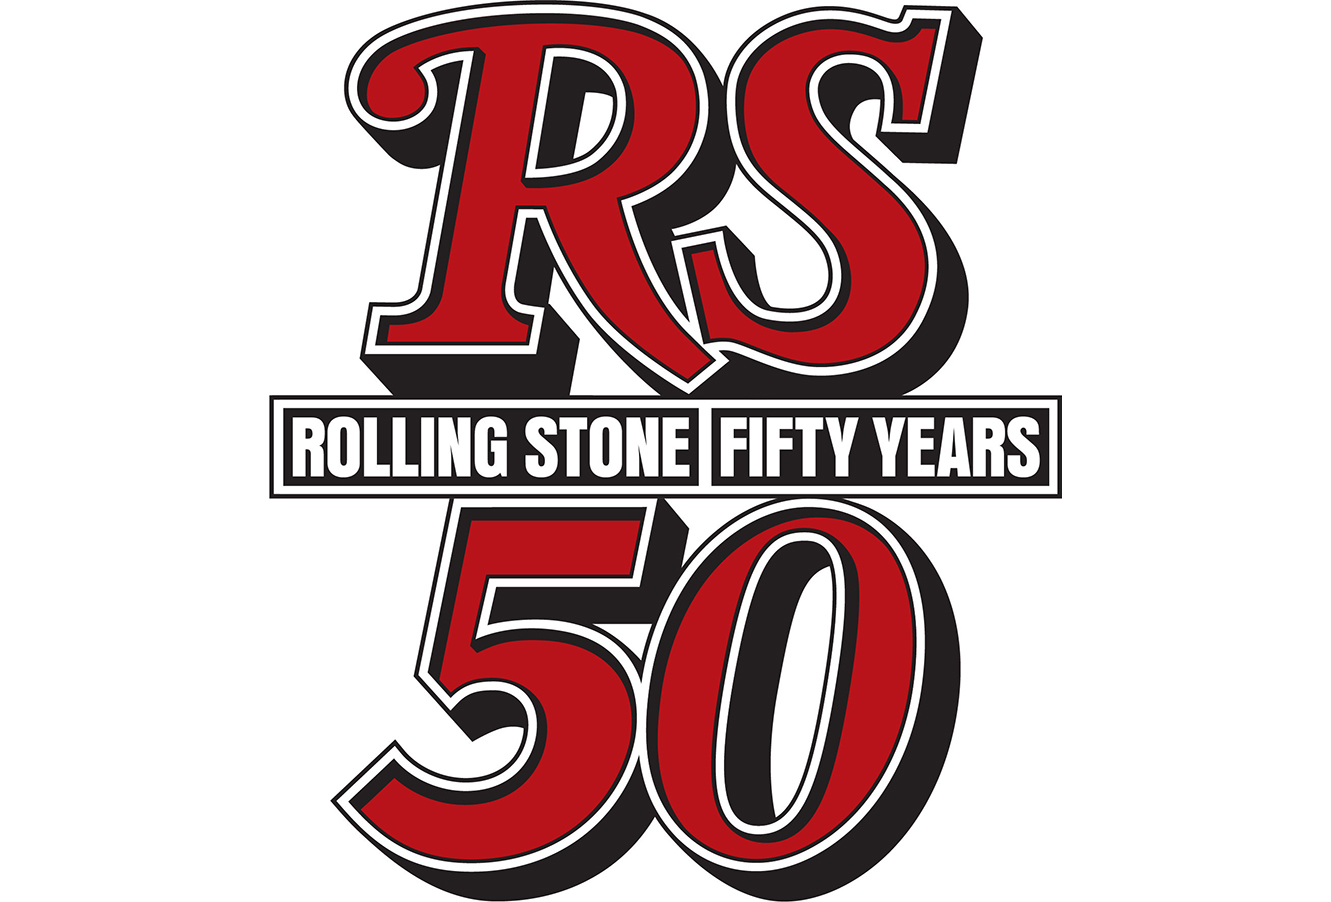 Rolling Stone 50